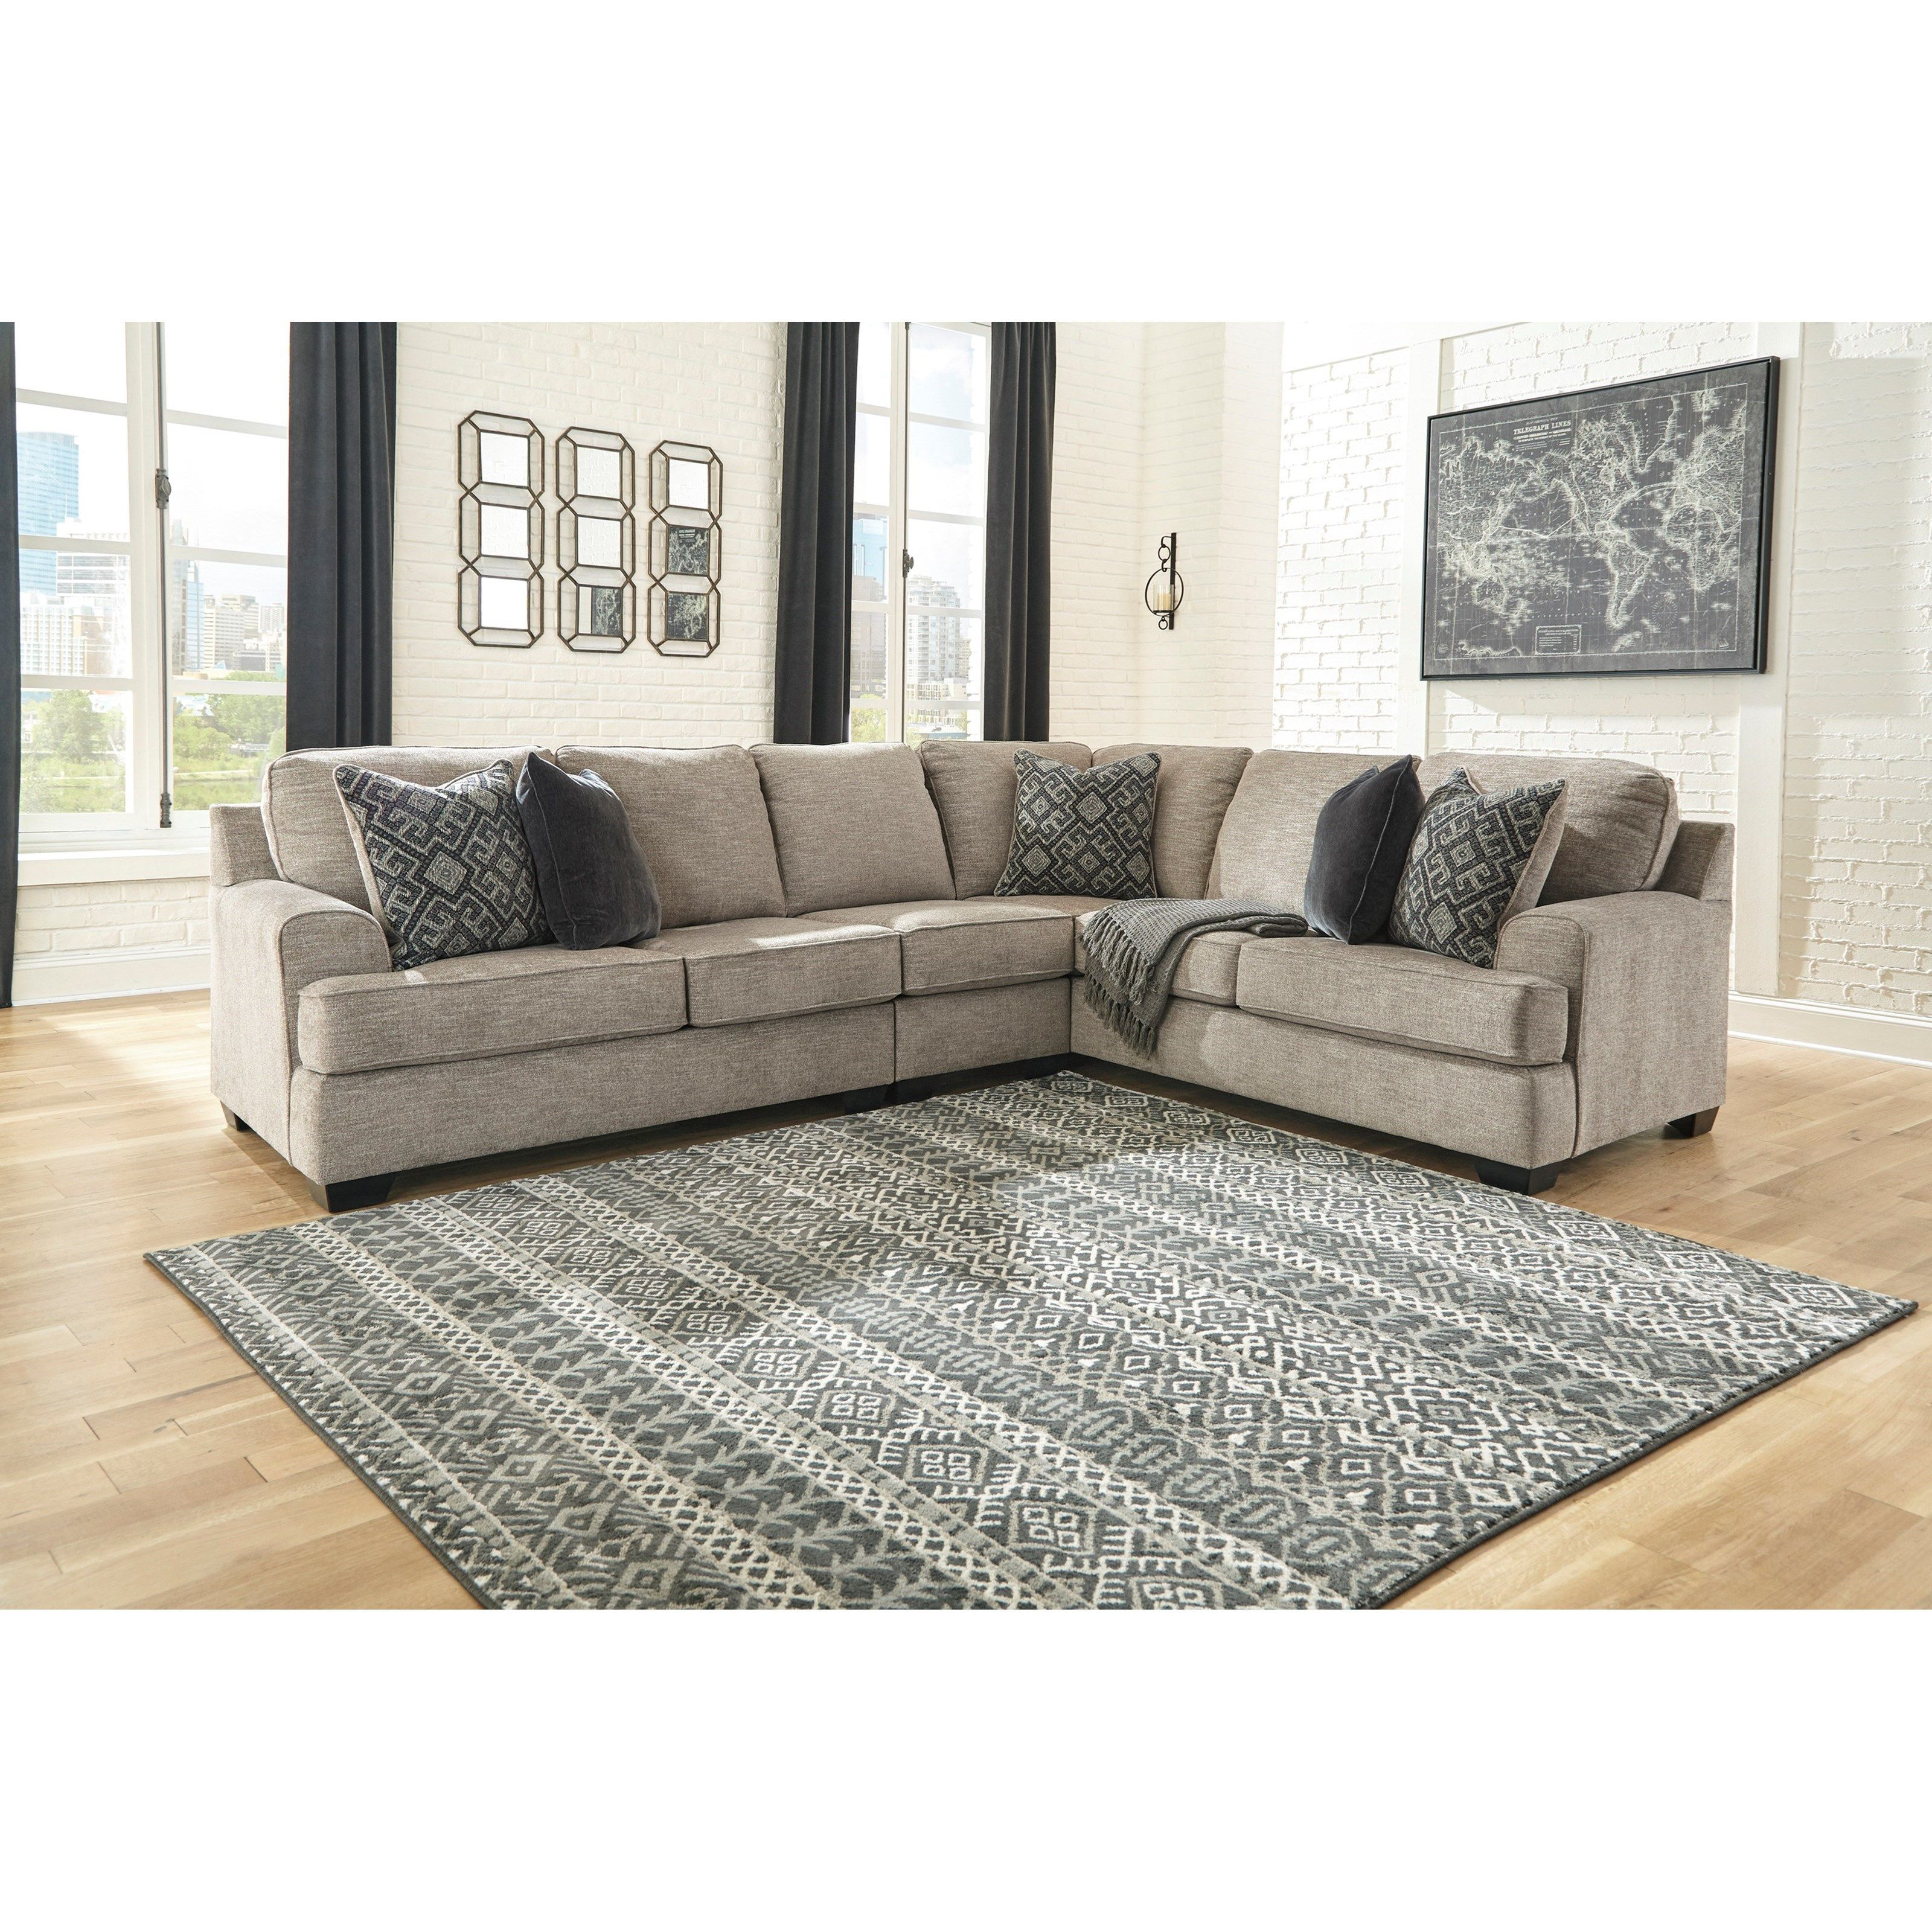 Bovarian Three Piece Sectional With Track Arms By Signature Design